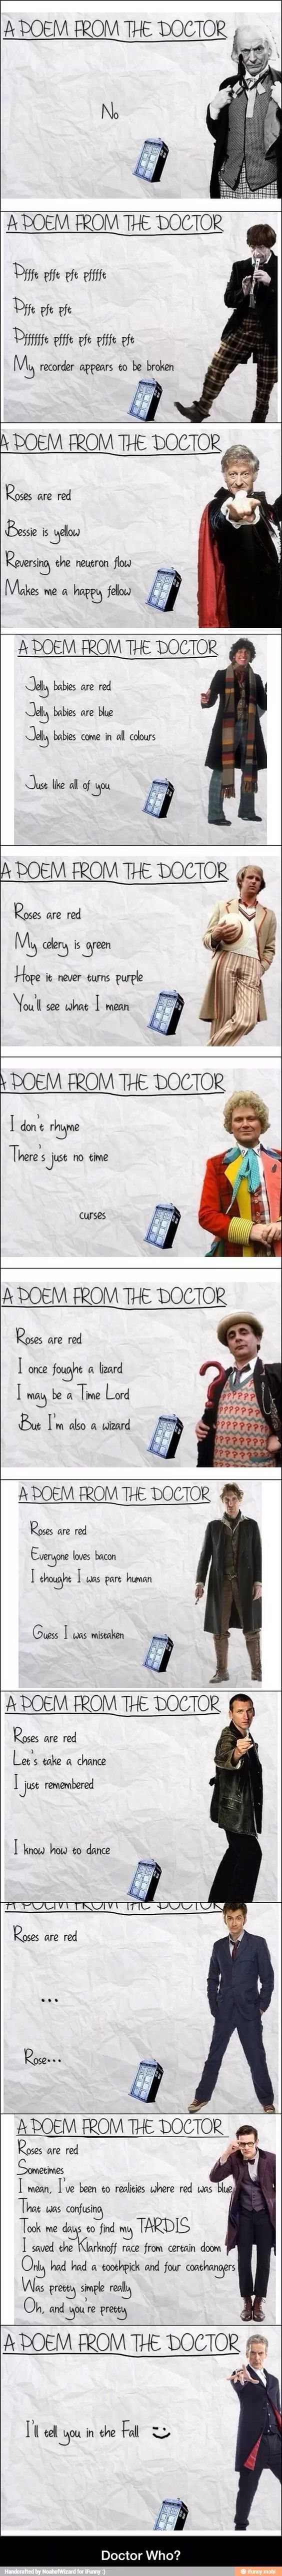 Poems by the doctors - Doctor Who